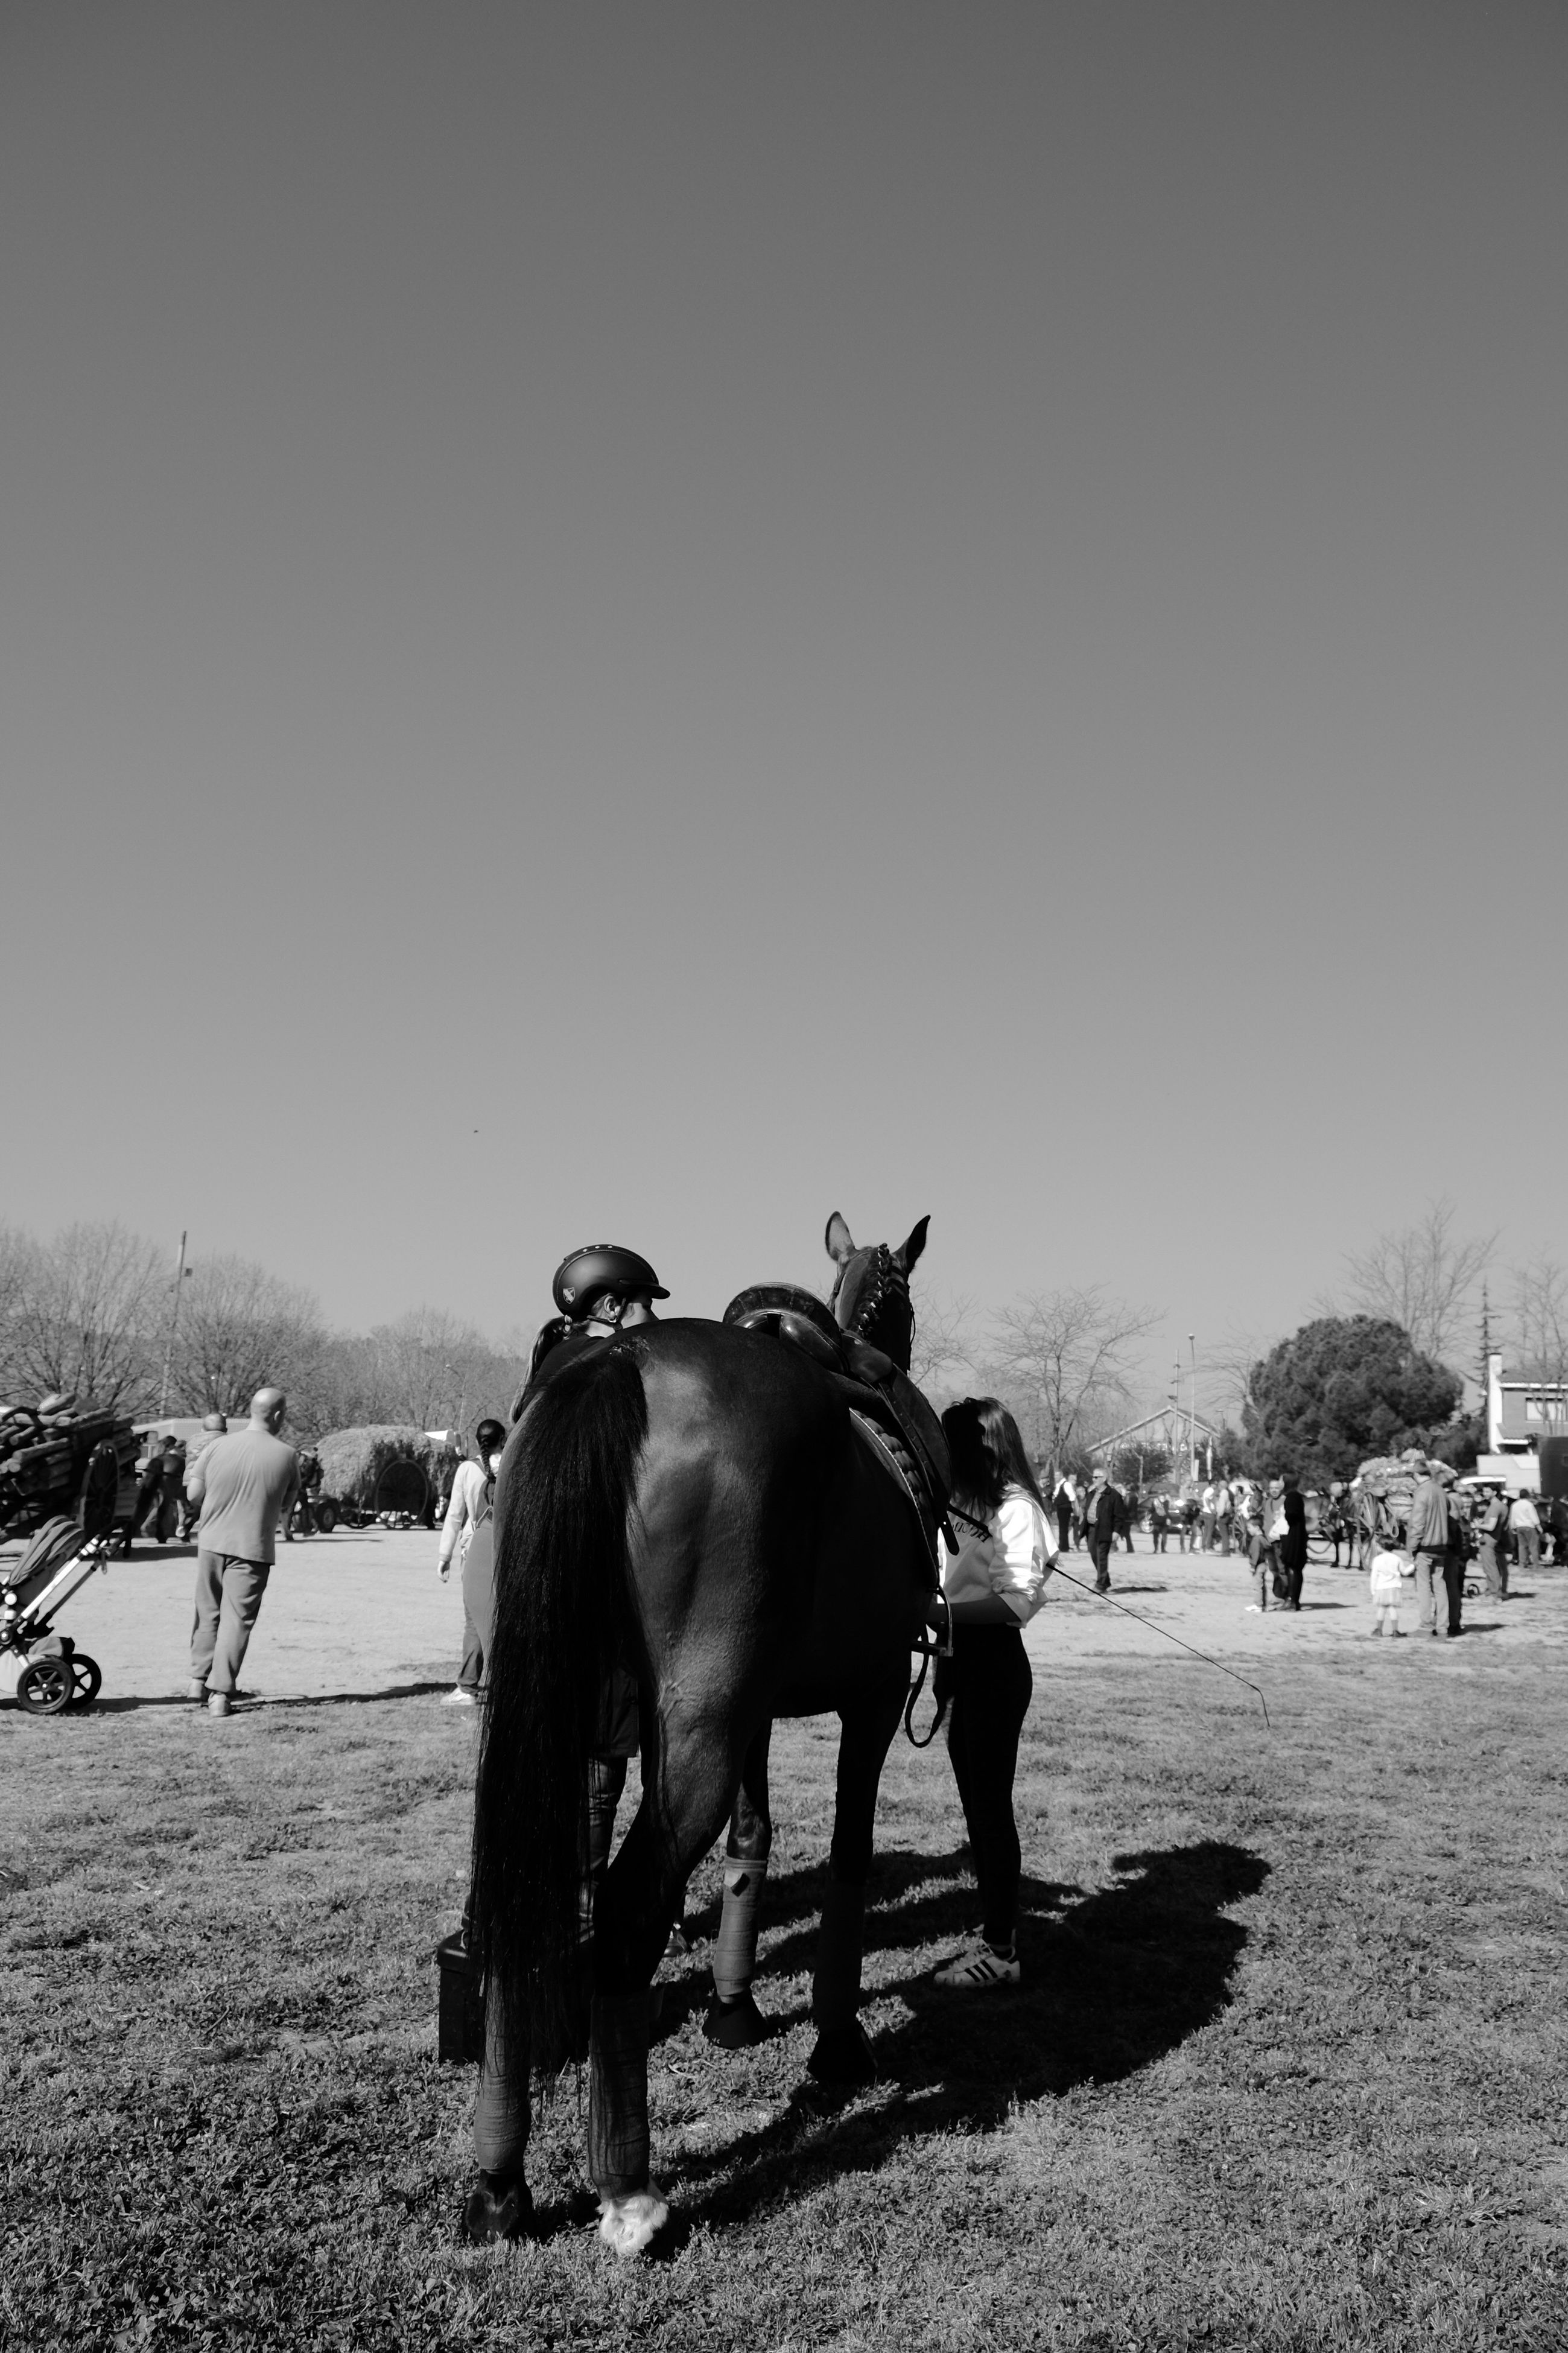 horse, animal themes, domestic animals, working animal, mammal, one animal, clear sky, herbivorous, outdoors, sky, day, livestock, hoofed mammal, real people, tree, horse racing